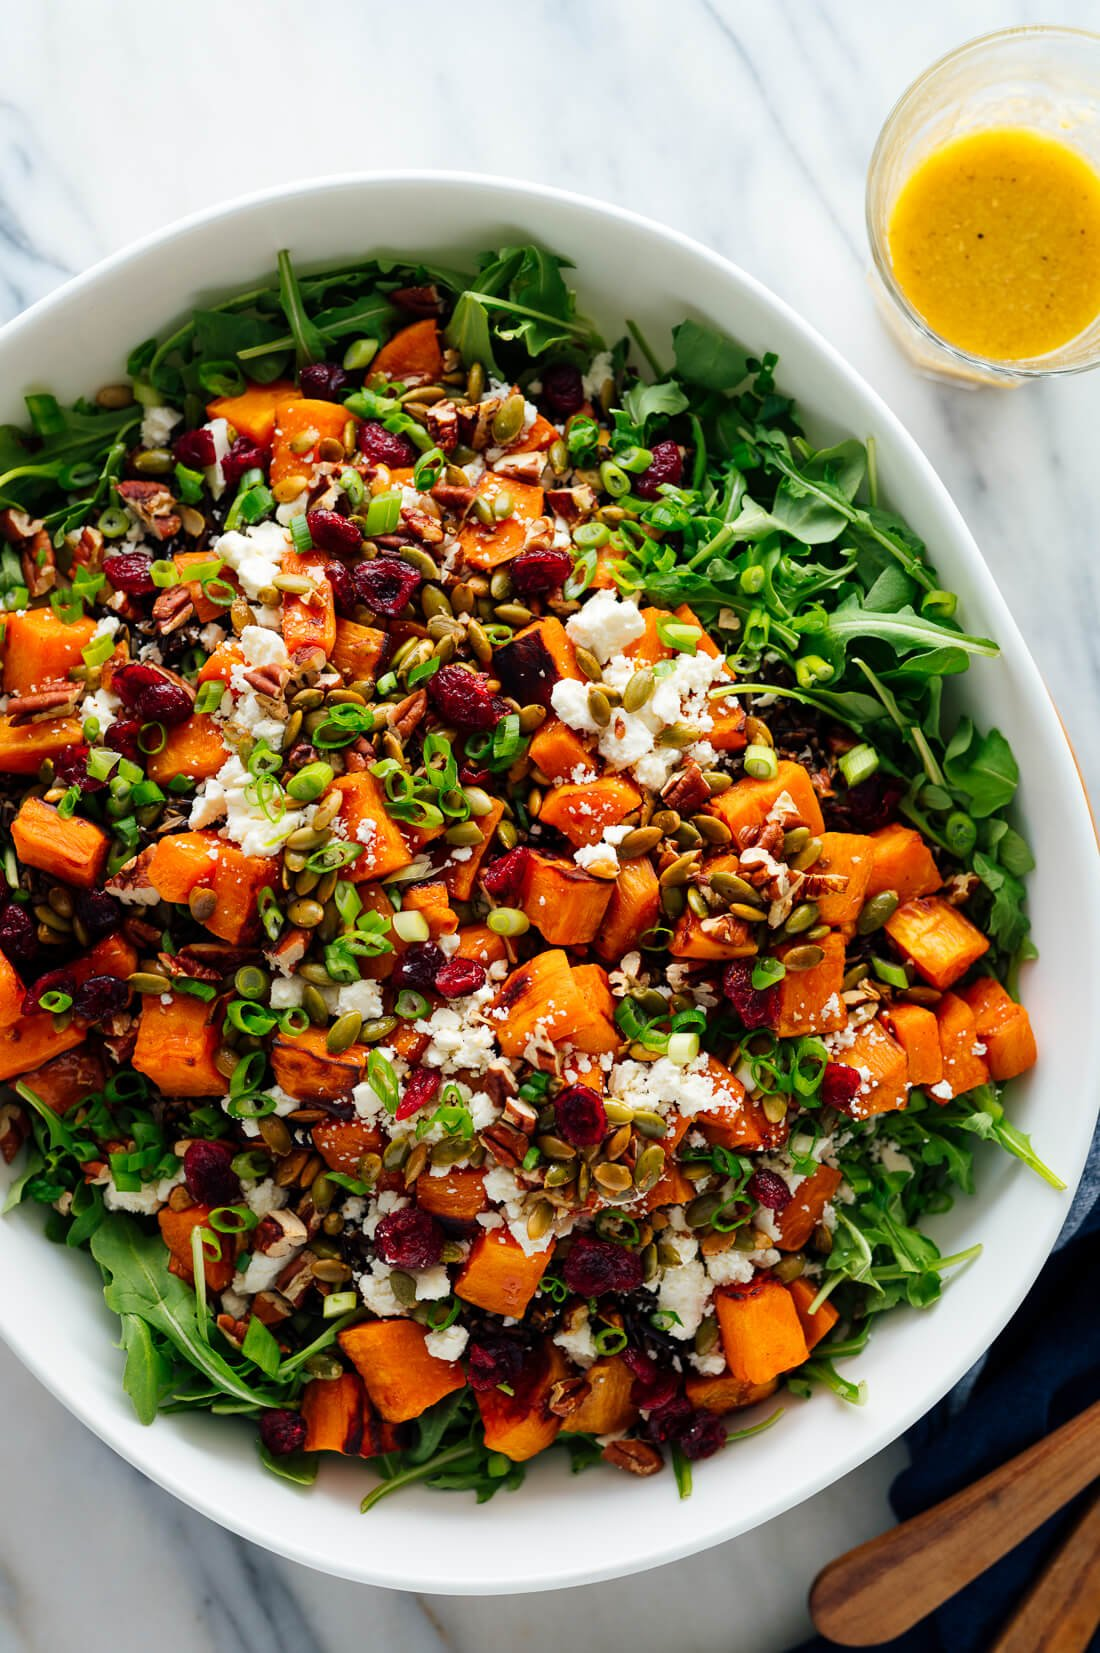 hearty sweet potato, arugula, wild rice salad with ginger dressing recipe